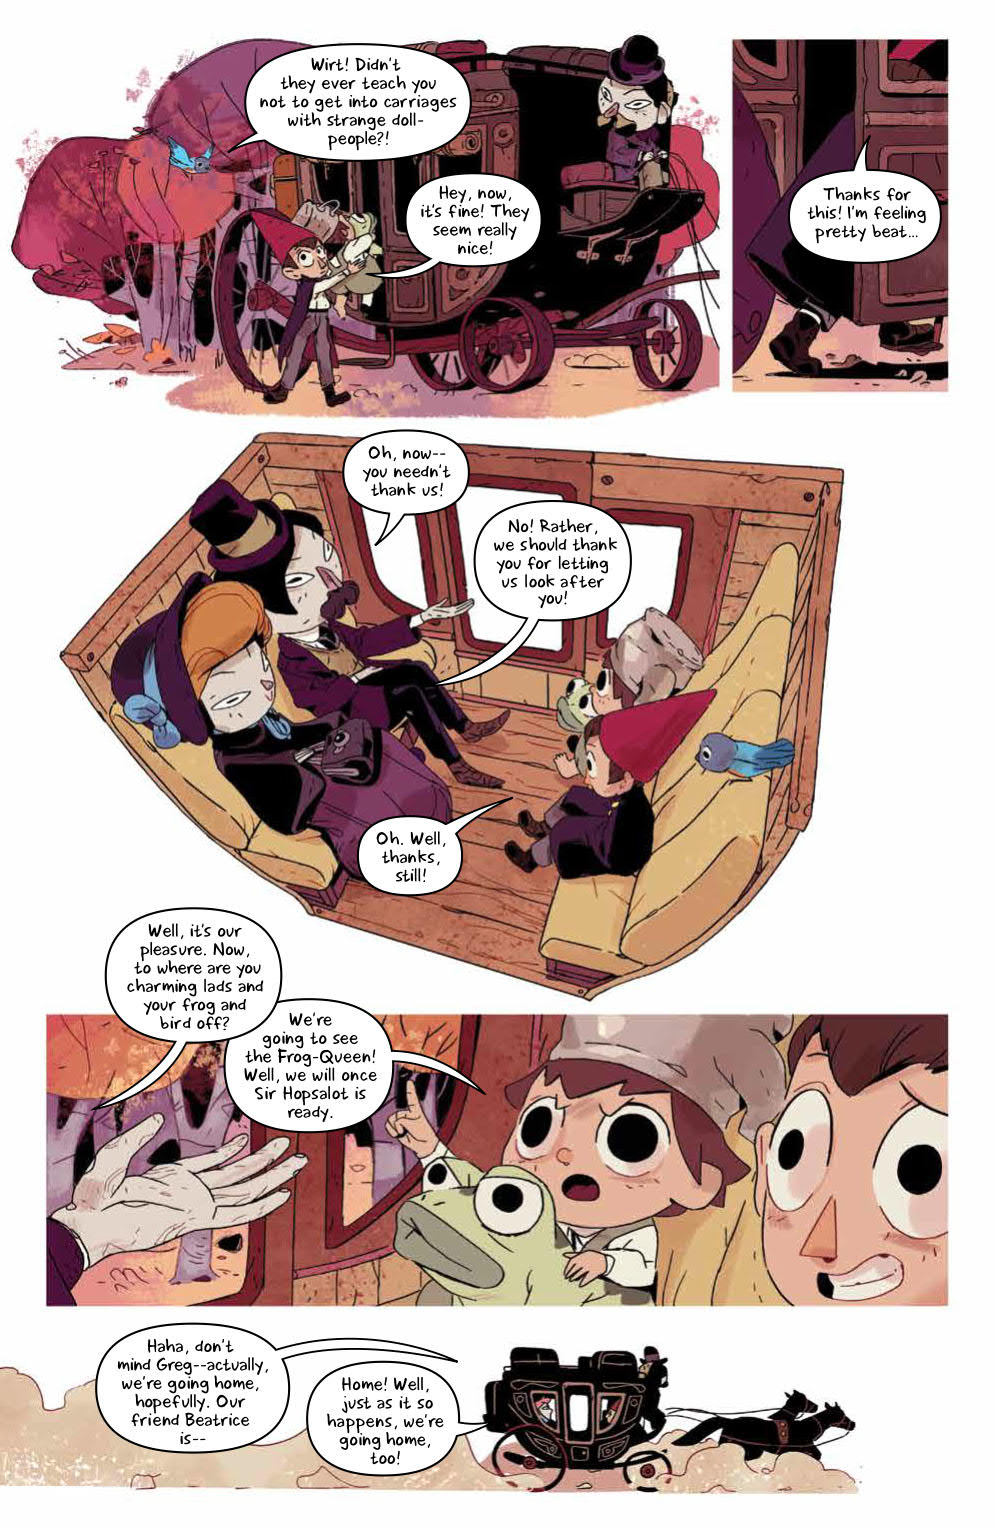 Page 17, Wirt, Greg, Beatrice, and dolls in horse and buggy.